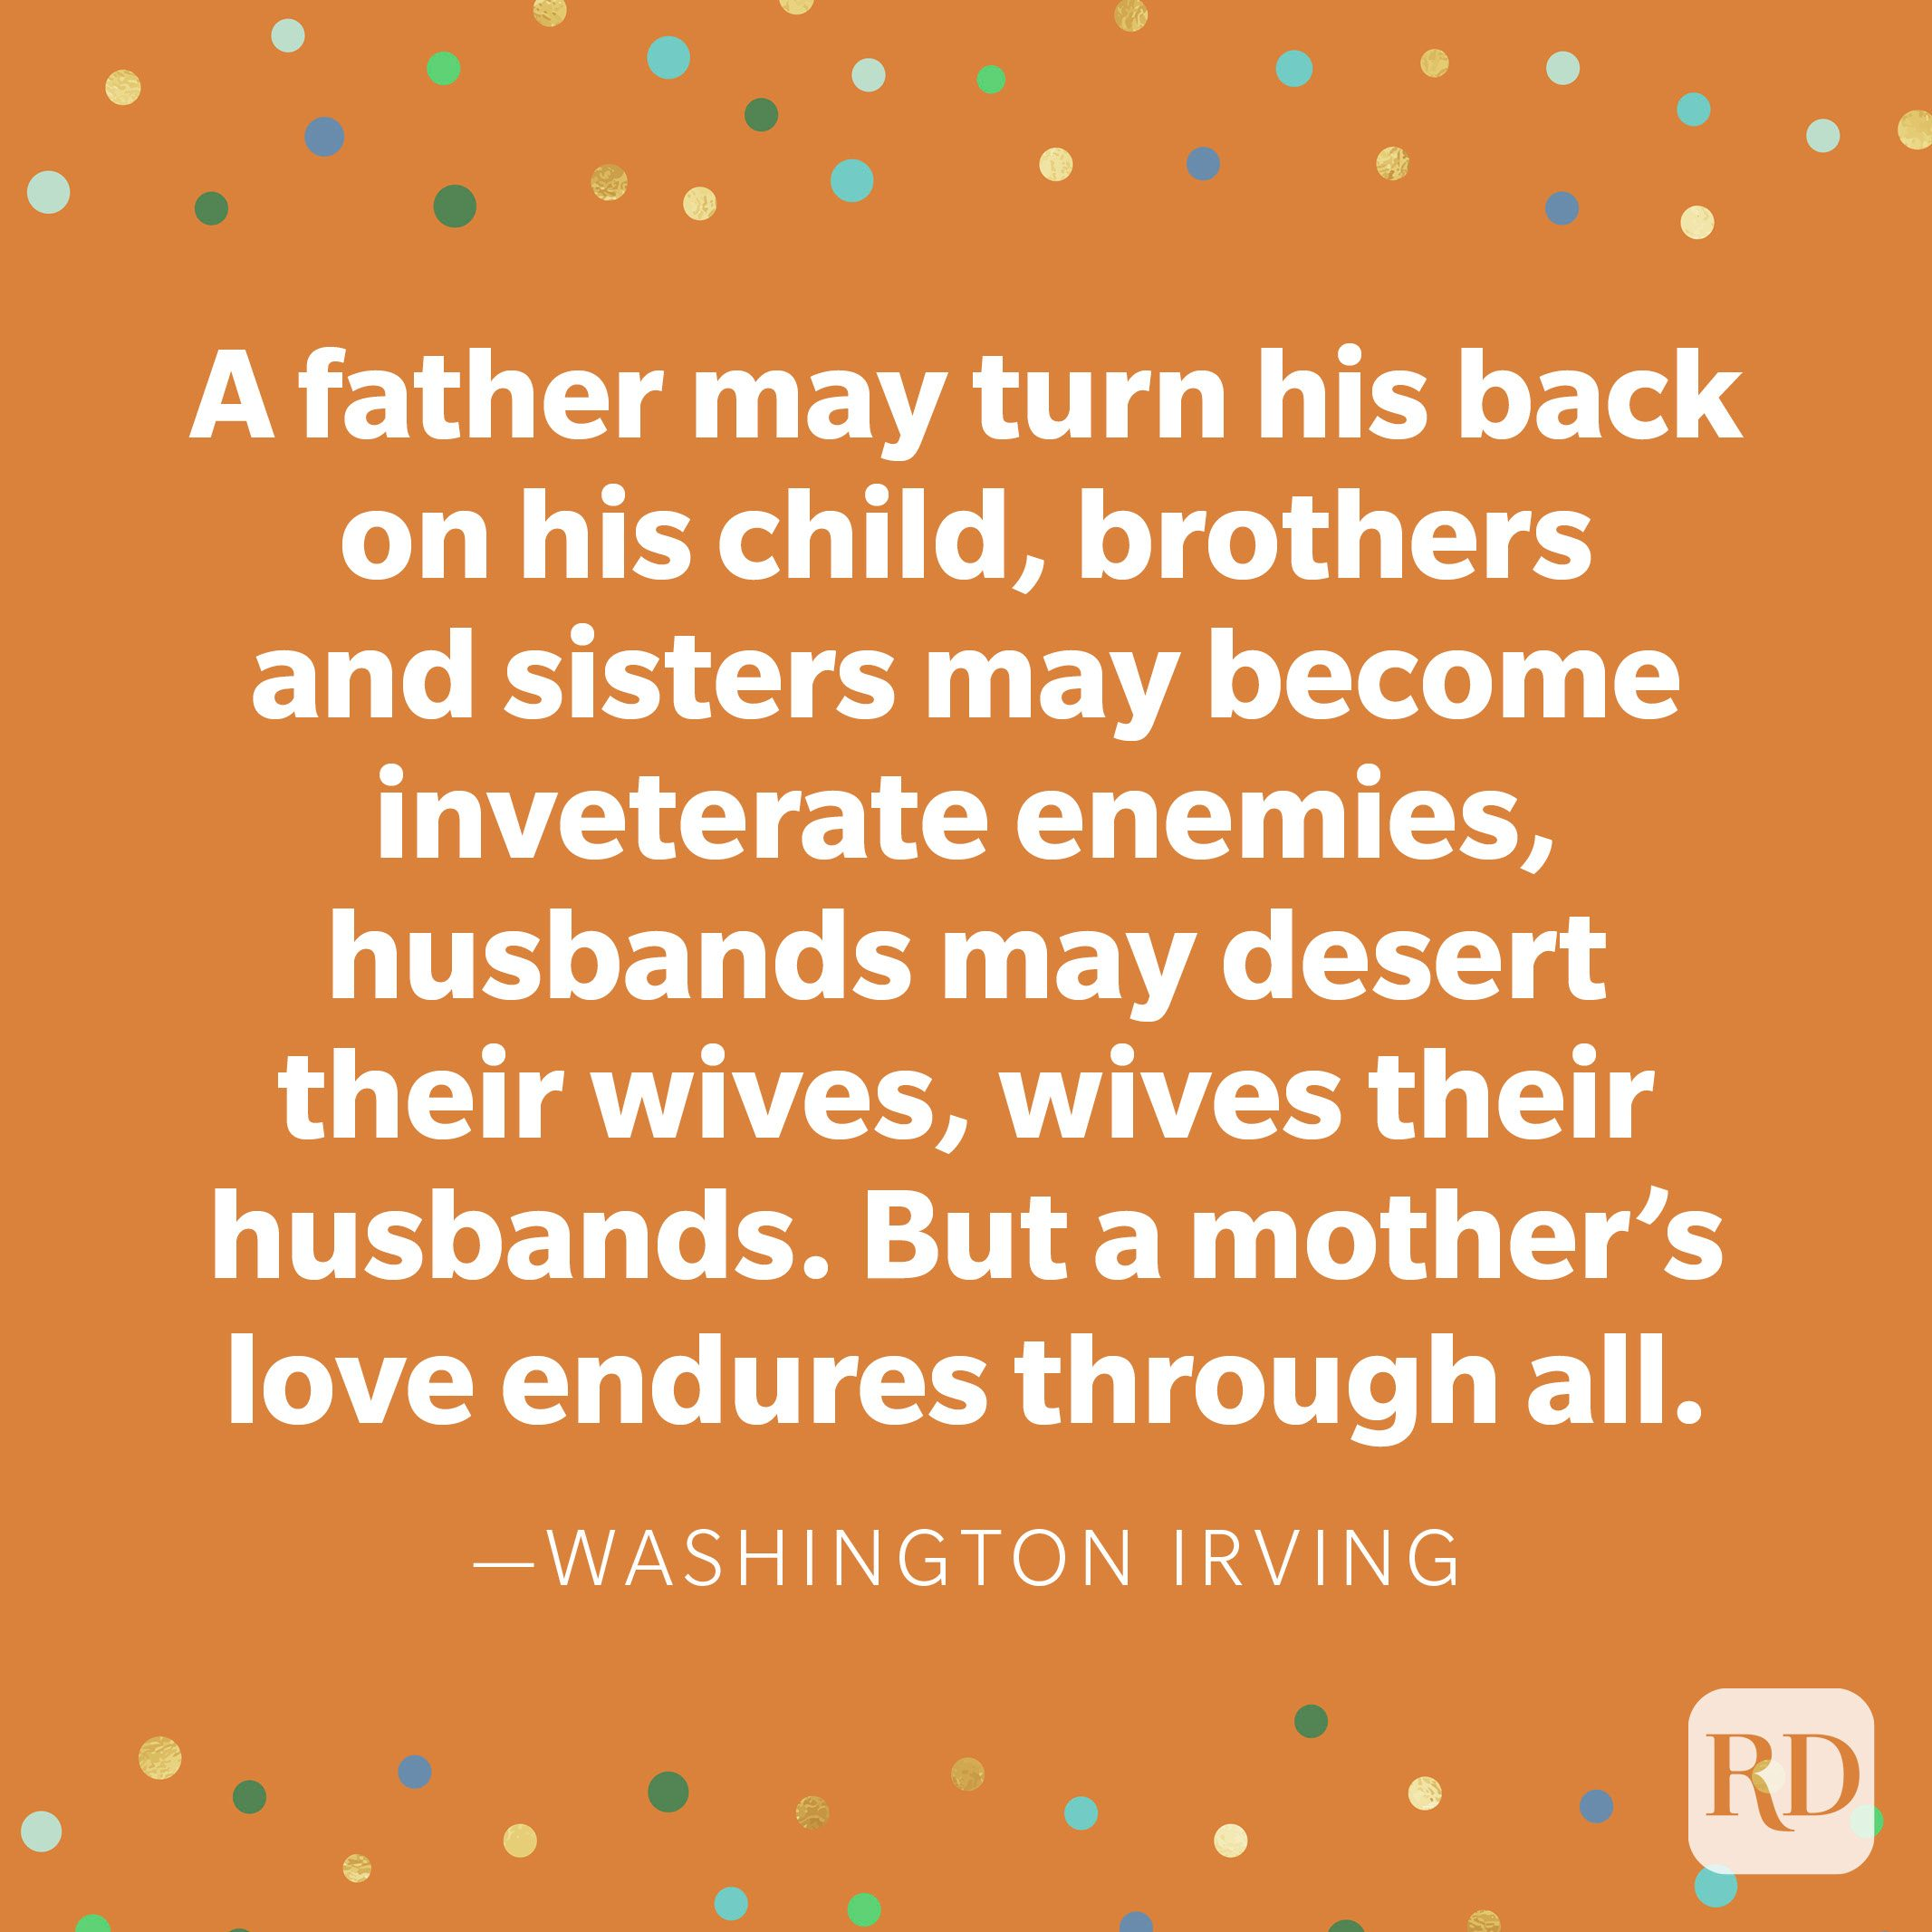 """A father may turn his back on his child, brothers and sisters may become inveterate enemies, husbands may desert their wives, wives their husbands. But a mother's love endures through all."" —Washington Irving."